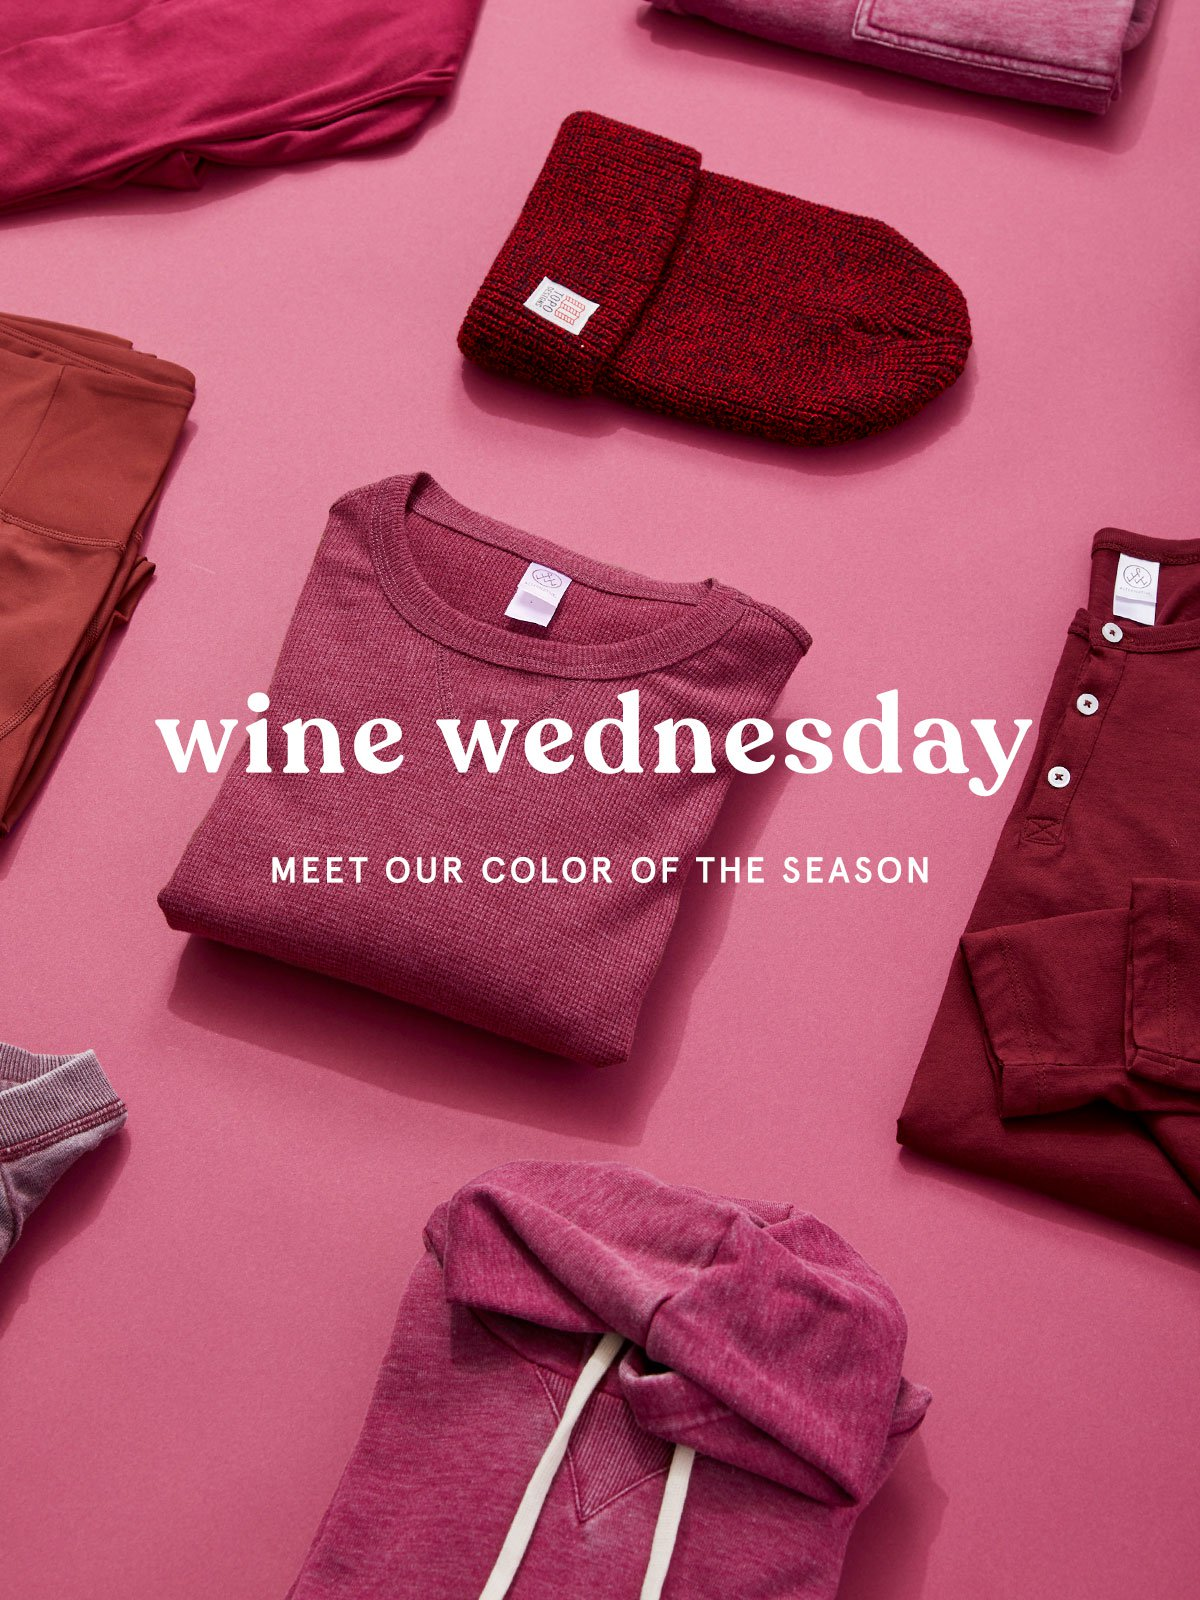 Wine Wednesday - Meet our color of the season.